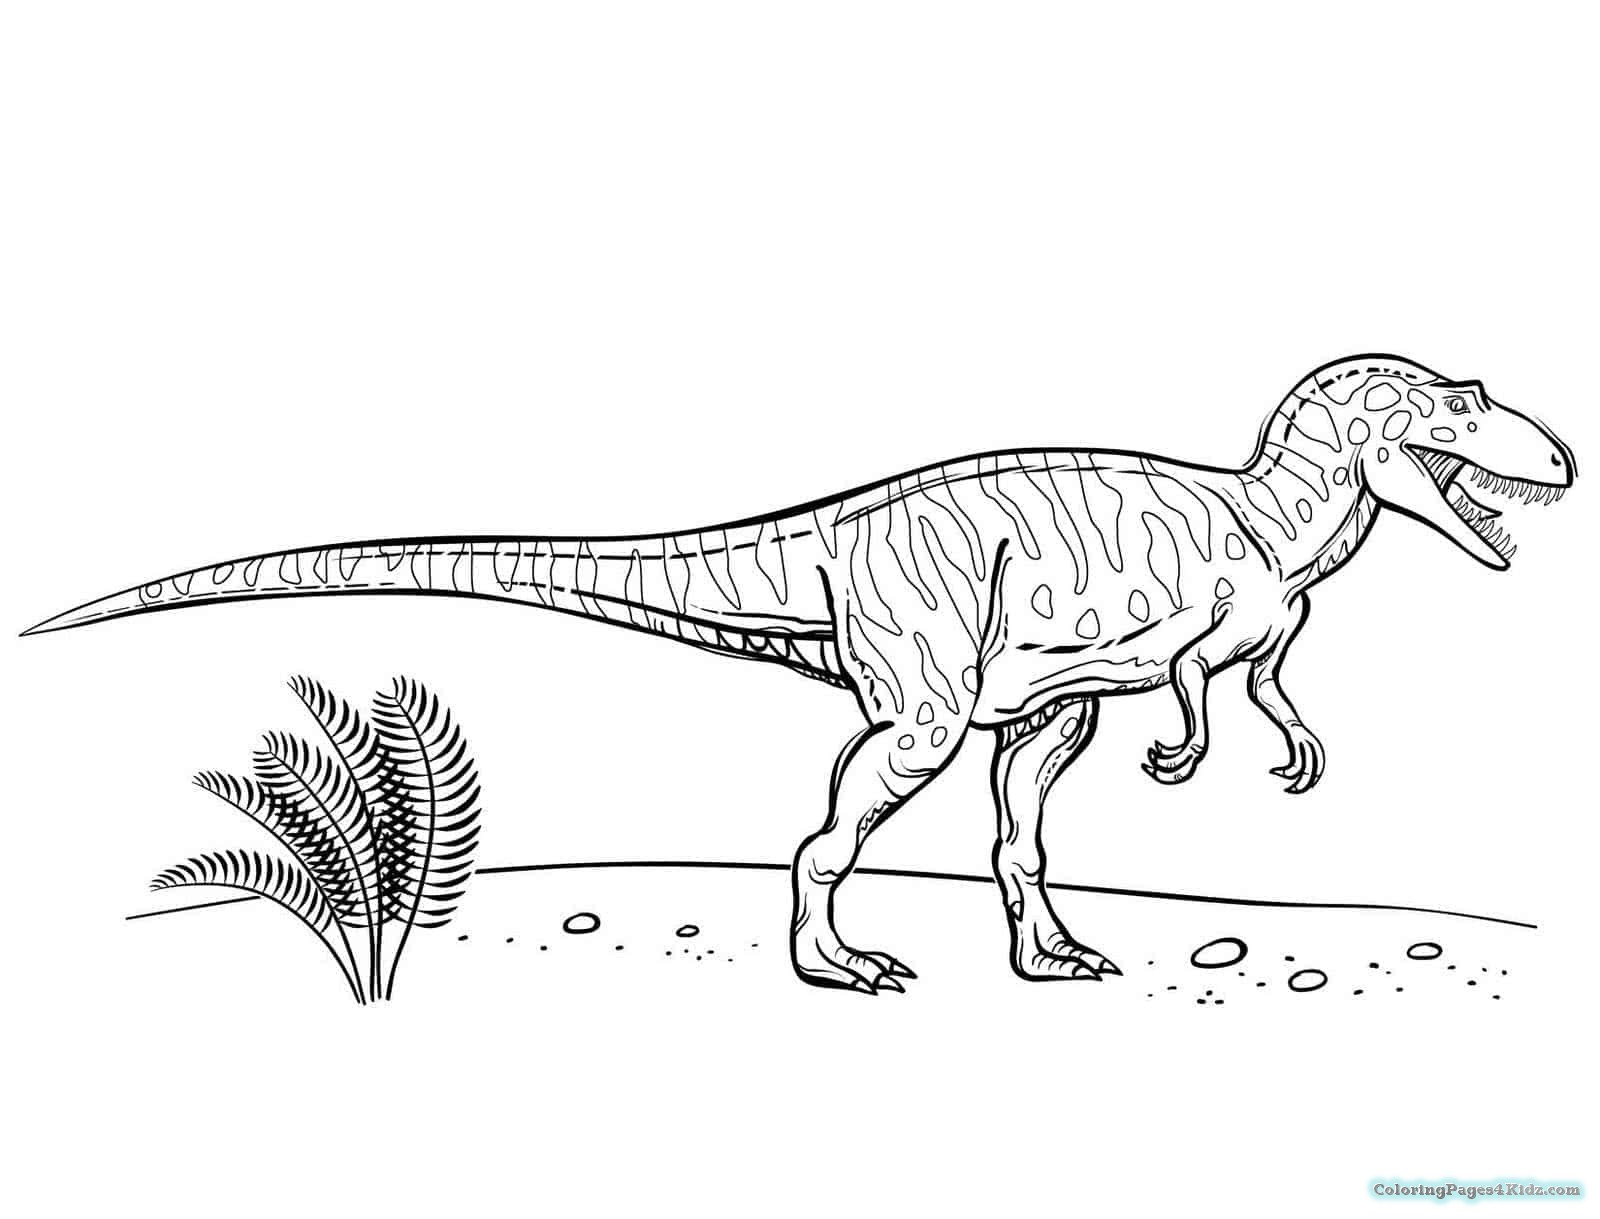 meat eating dinosaur coloring pages meat eating dinosaurs coloring pages t rex coloring coloring eating meat pages dinosaur